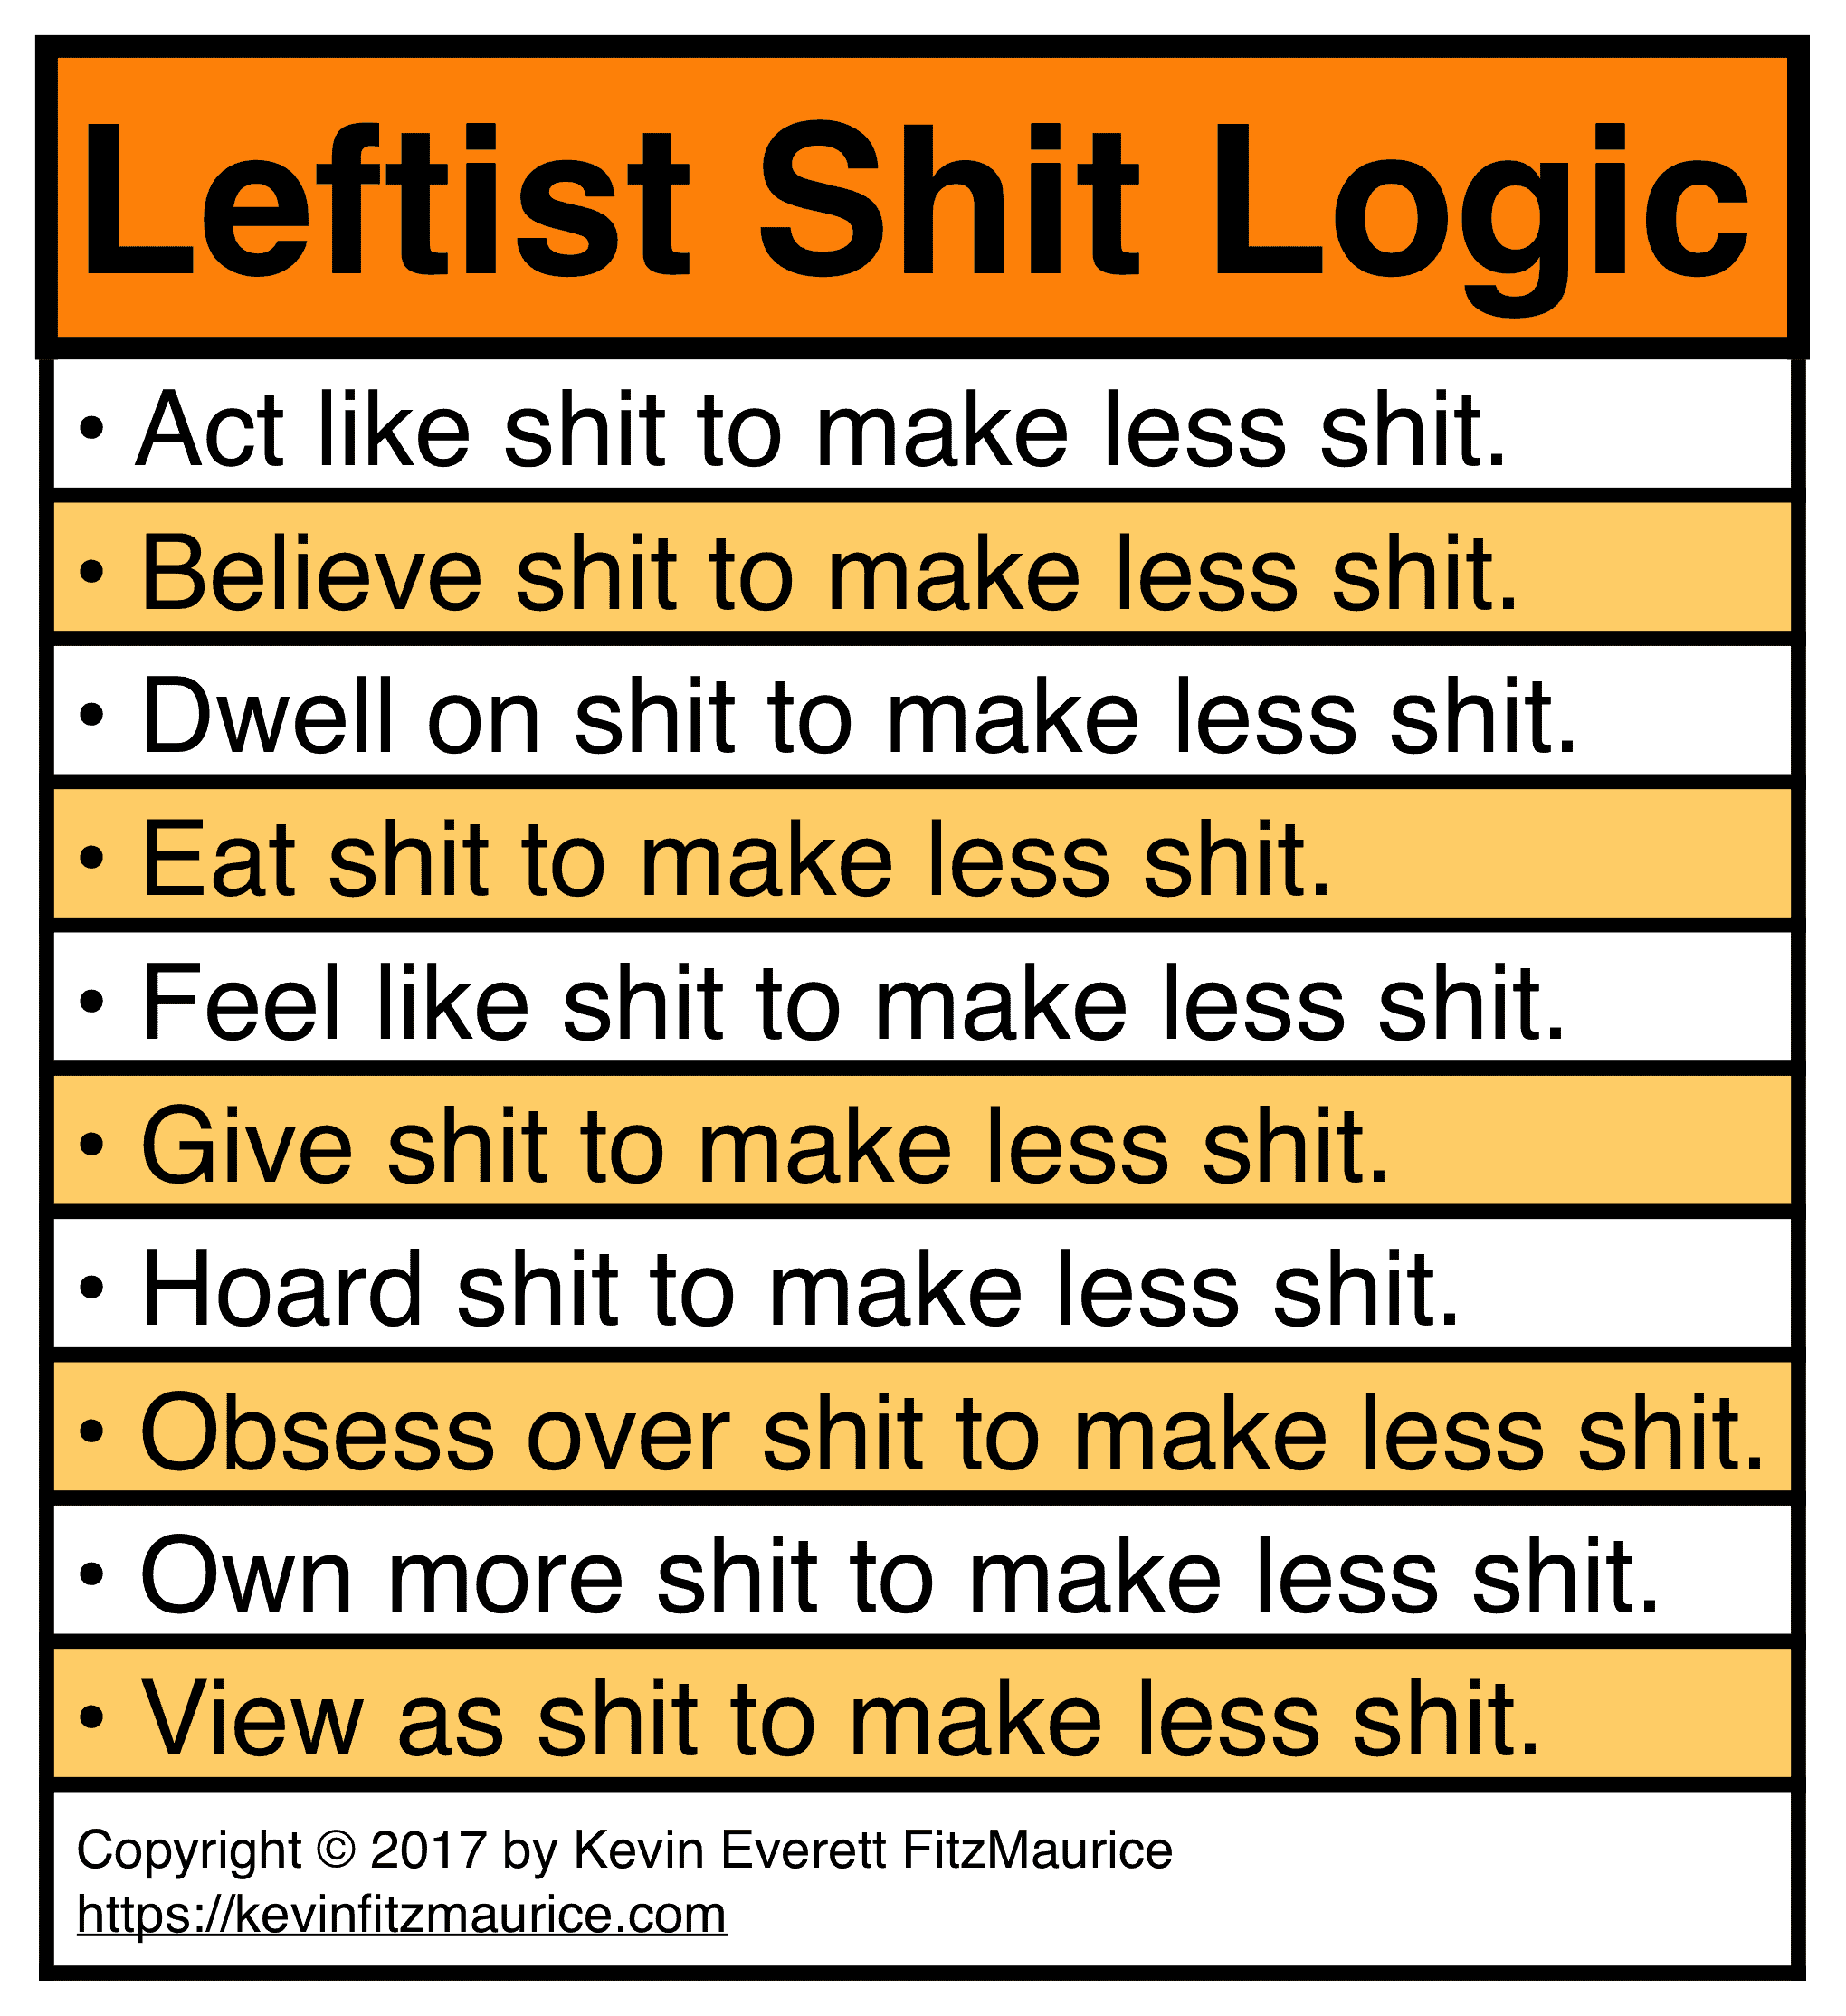 Leftist Shit Logic Examples